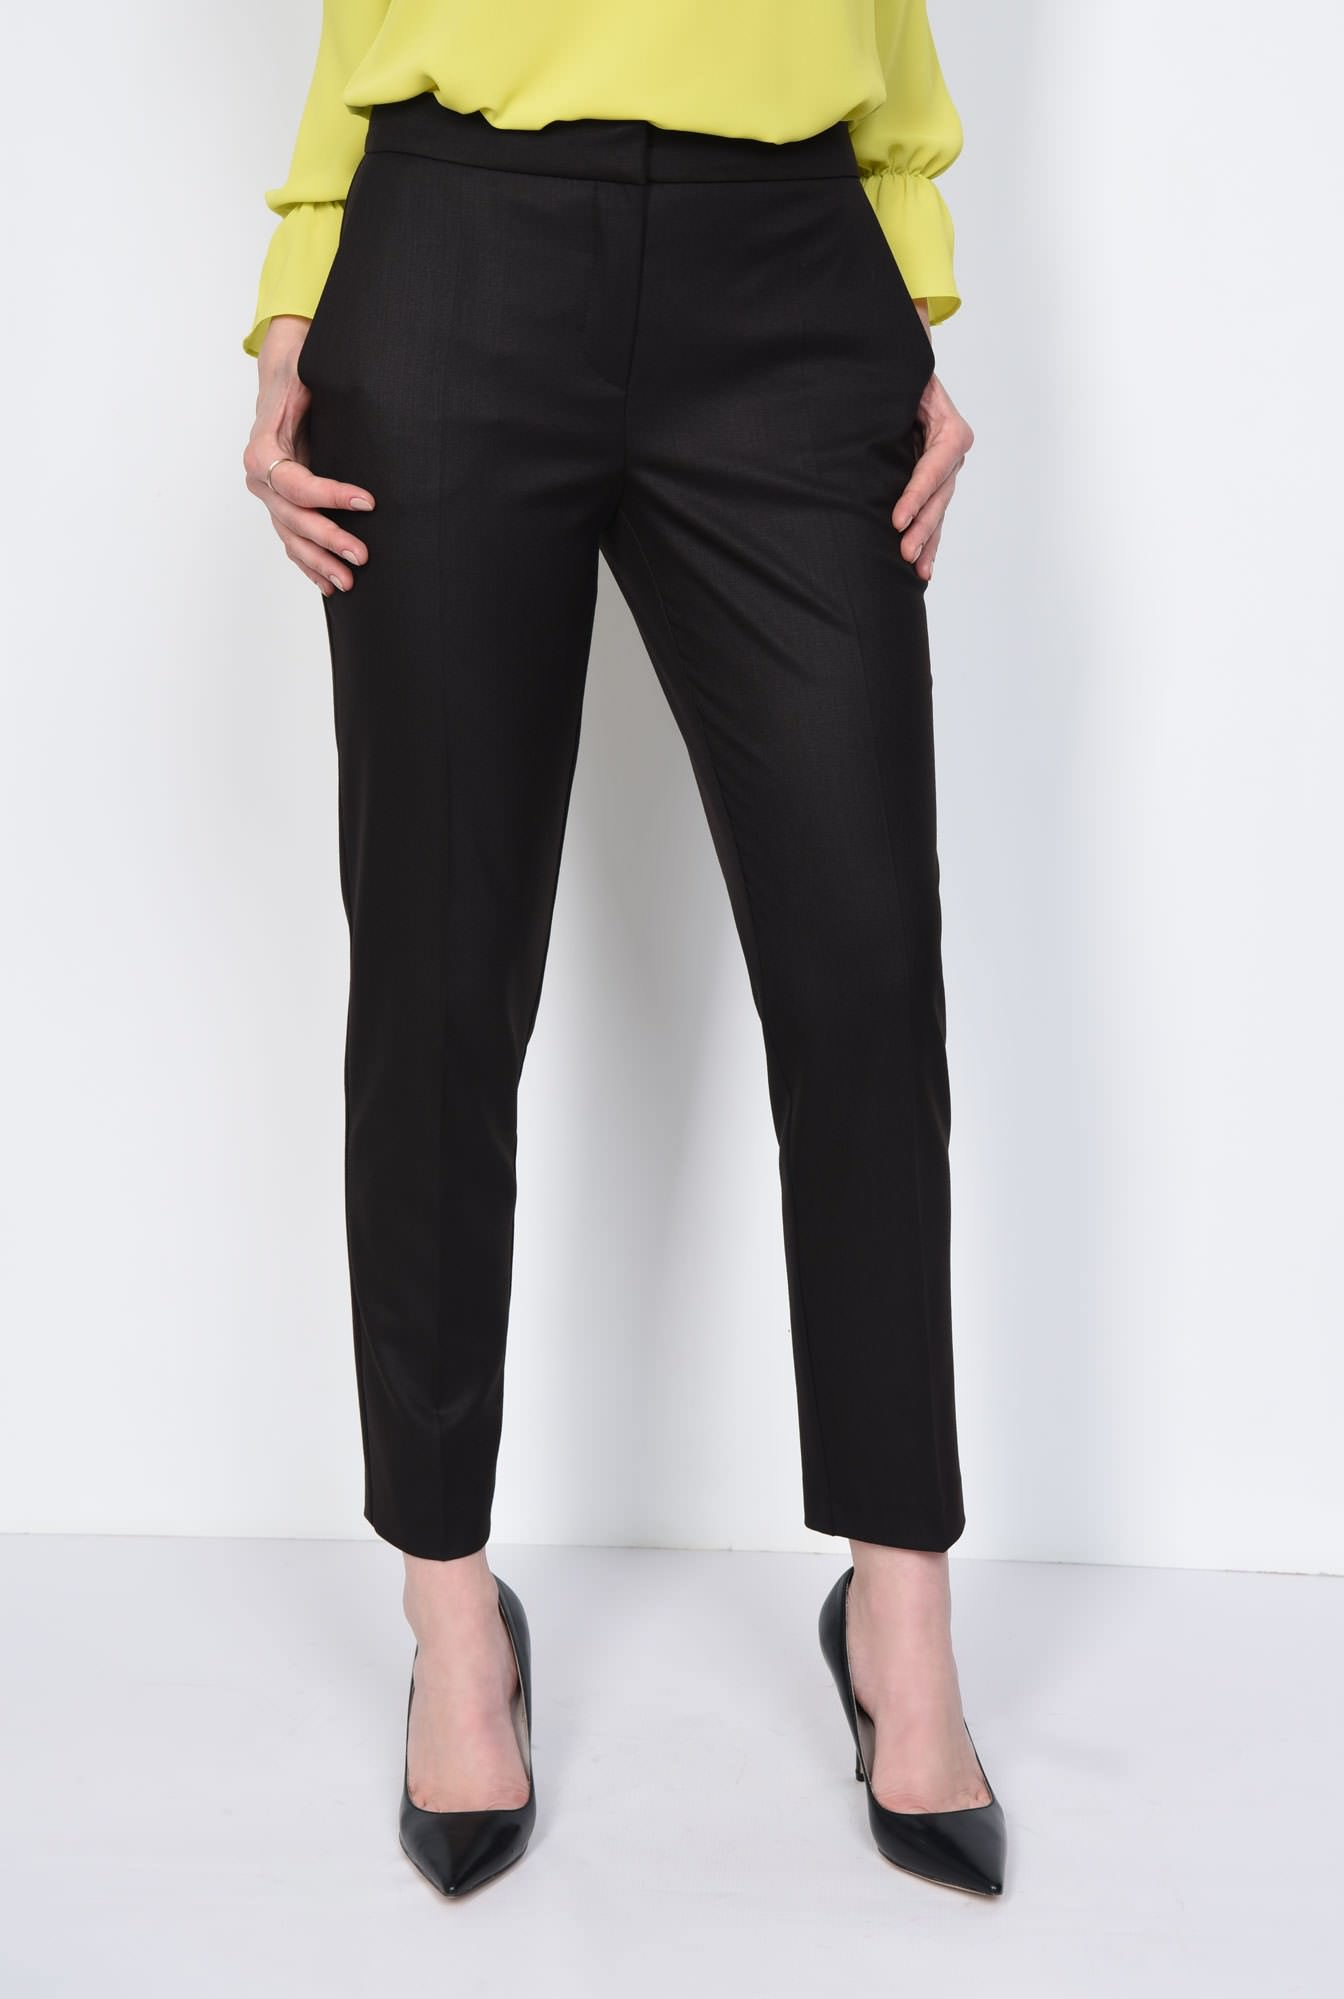 2 - PANTALON OFFICE CONIC PT 143-NEGRU